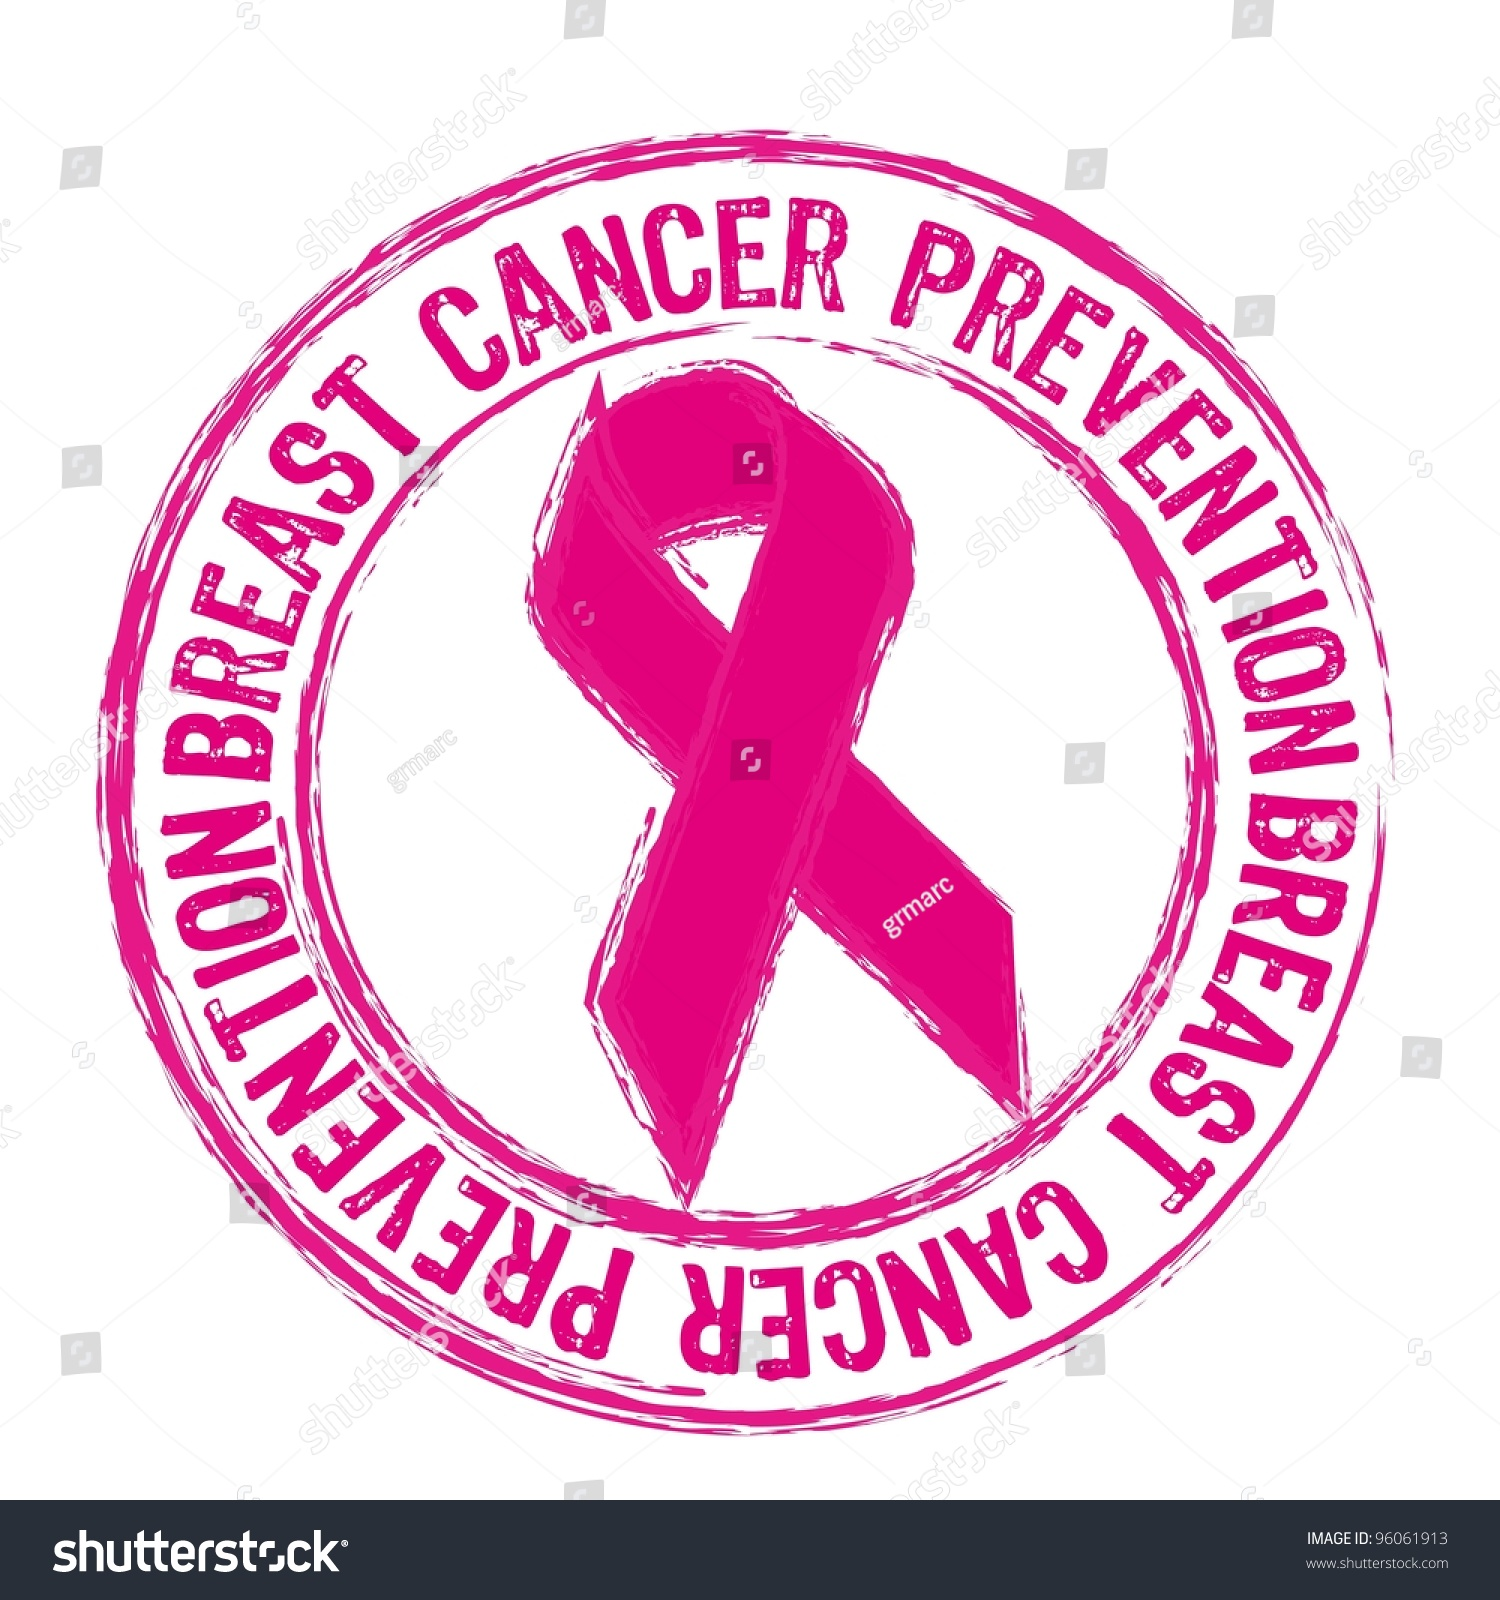 Breast cancer research stamp - Wikipedia